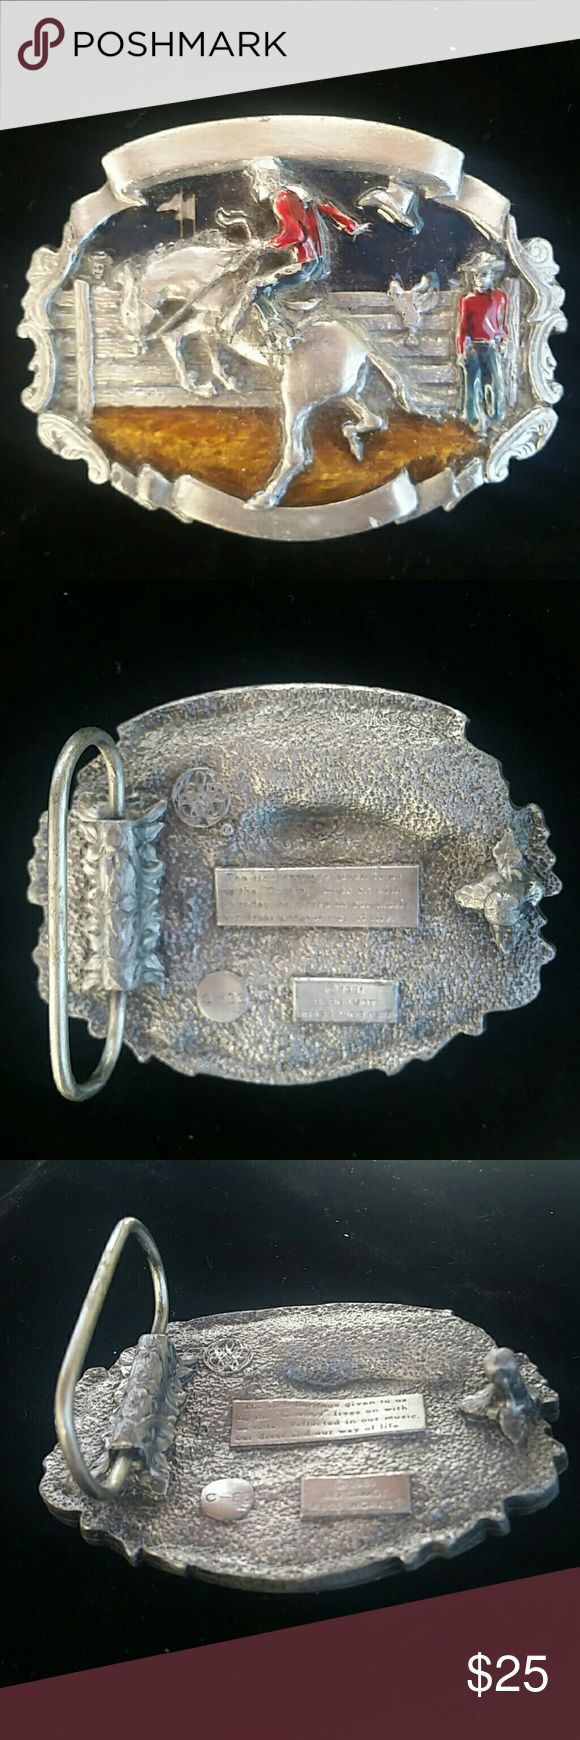 Rodeo Belt Buckle Enamel & Silver Rodeo Belt Buckle Enamel & Silver  This item is used and may have some knicks or scratches. Please review all photos and ask any questions prior to purchasing. Also, unless noted I am unsure of the type of materials used. Thank you! Accessories Belts